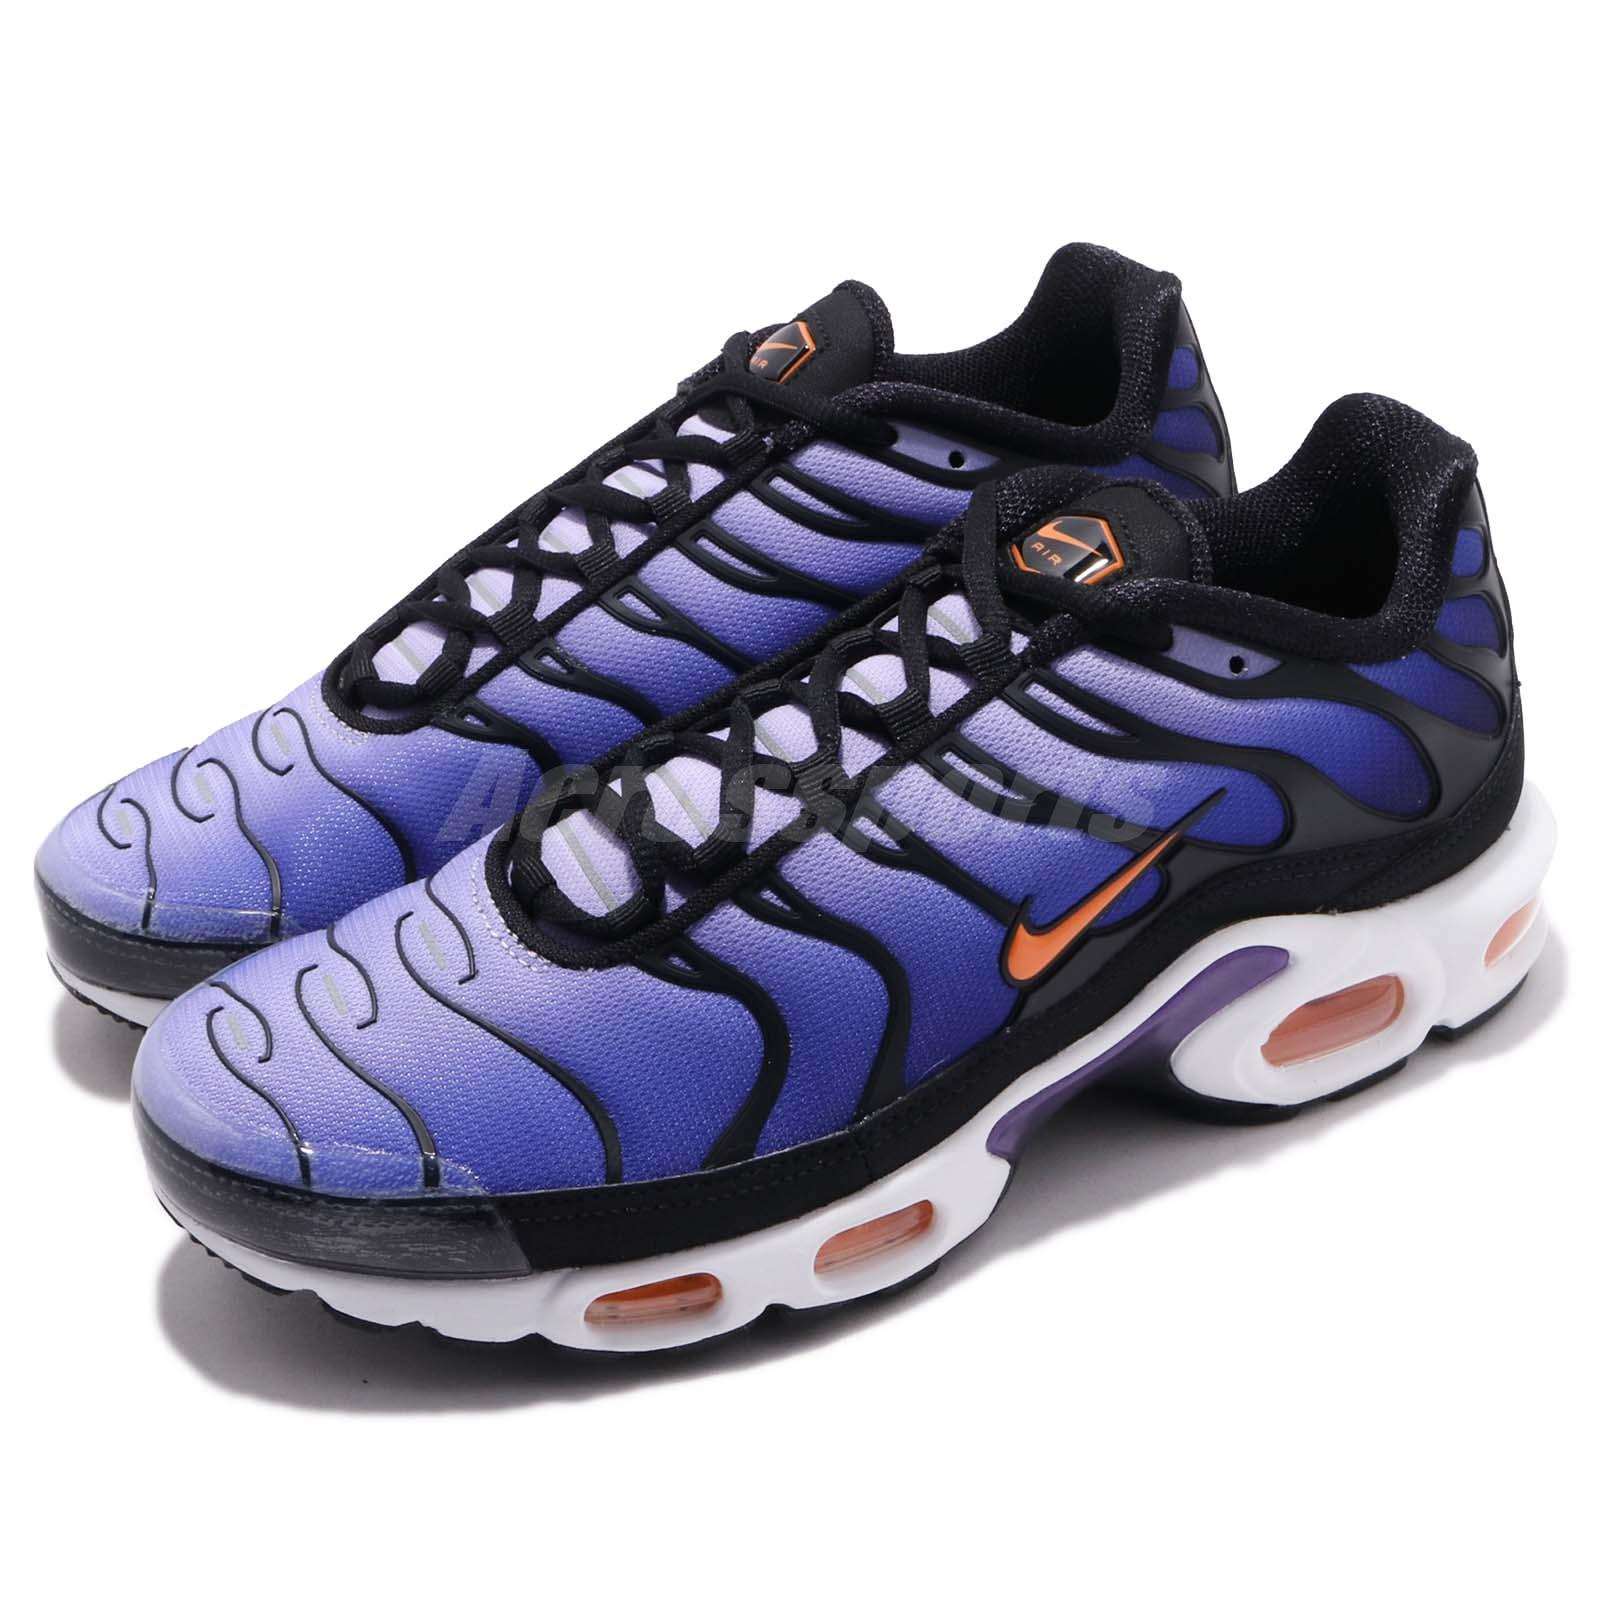 Nike Air Max Plus OG Voltage Purple Black Orange Mens Running Shoes ...